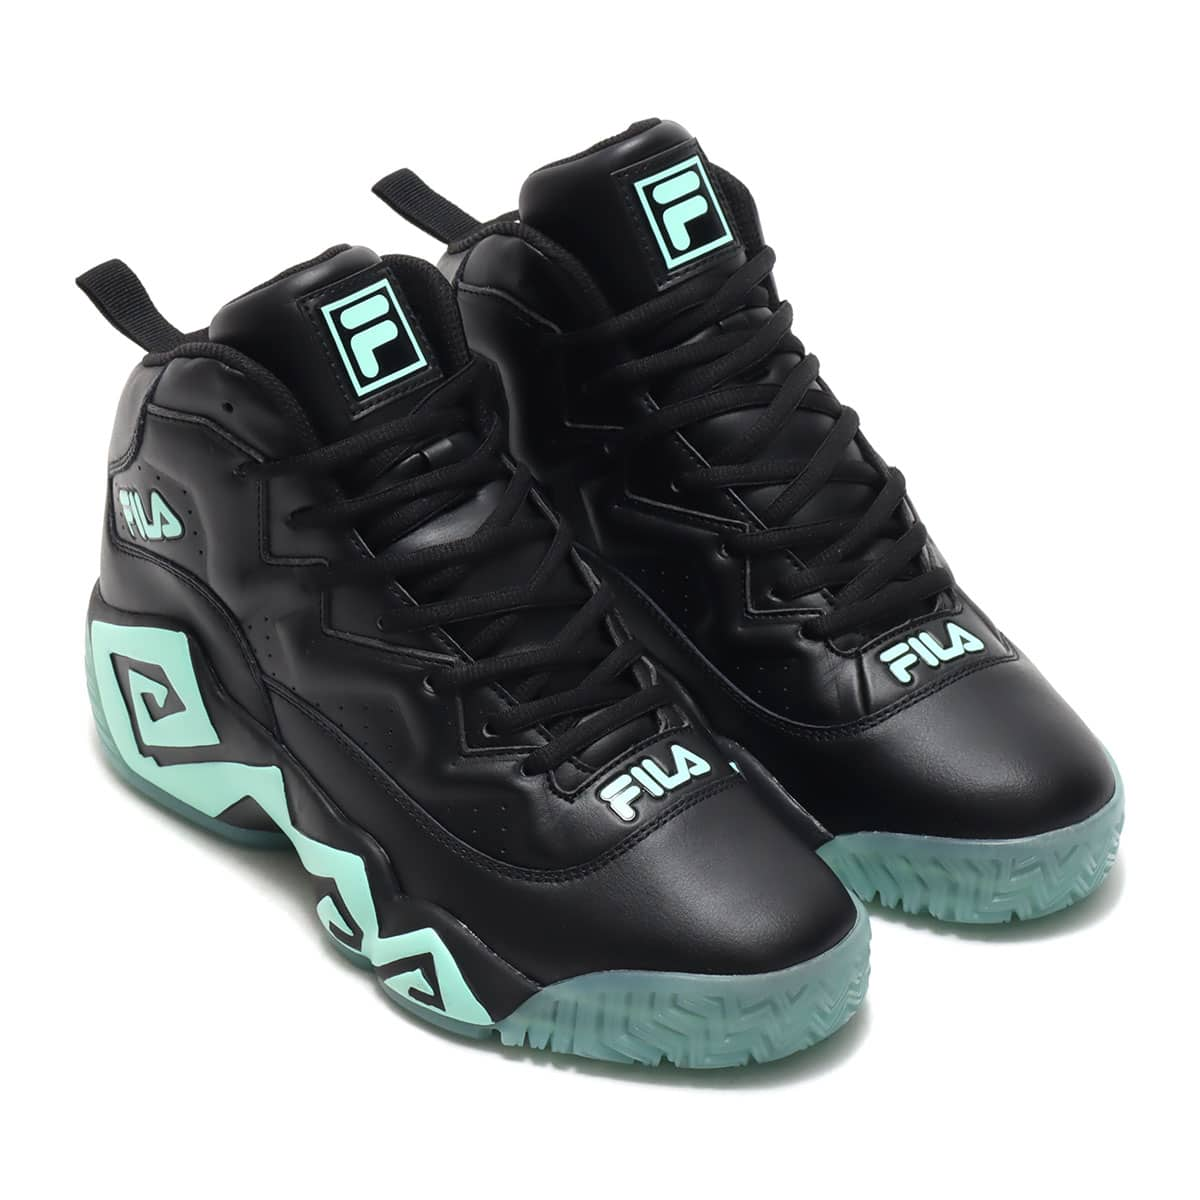 FILA MB Glow In The Dark Black / Black / Glow In The Dark 21SS-S_photo_large